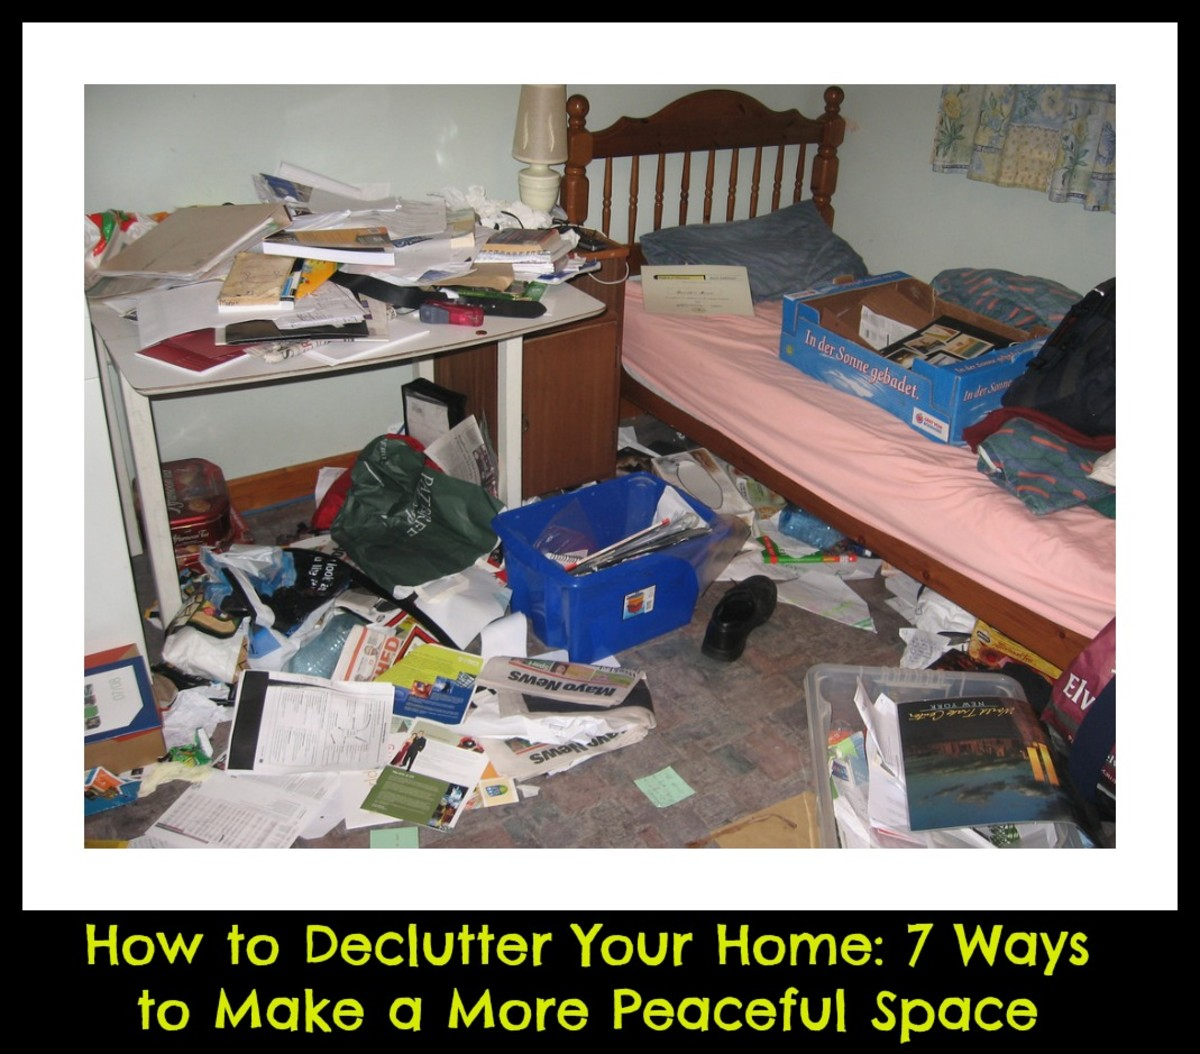 7 Ways to Declutter Your Home and Make a More Peaceful Space